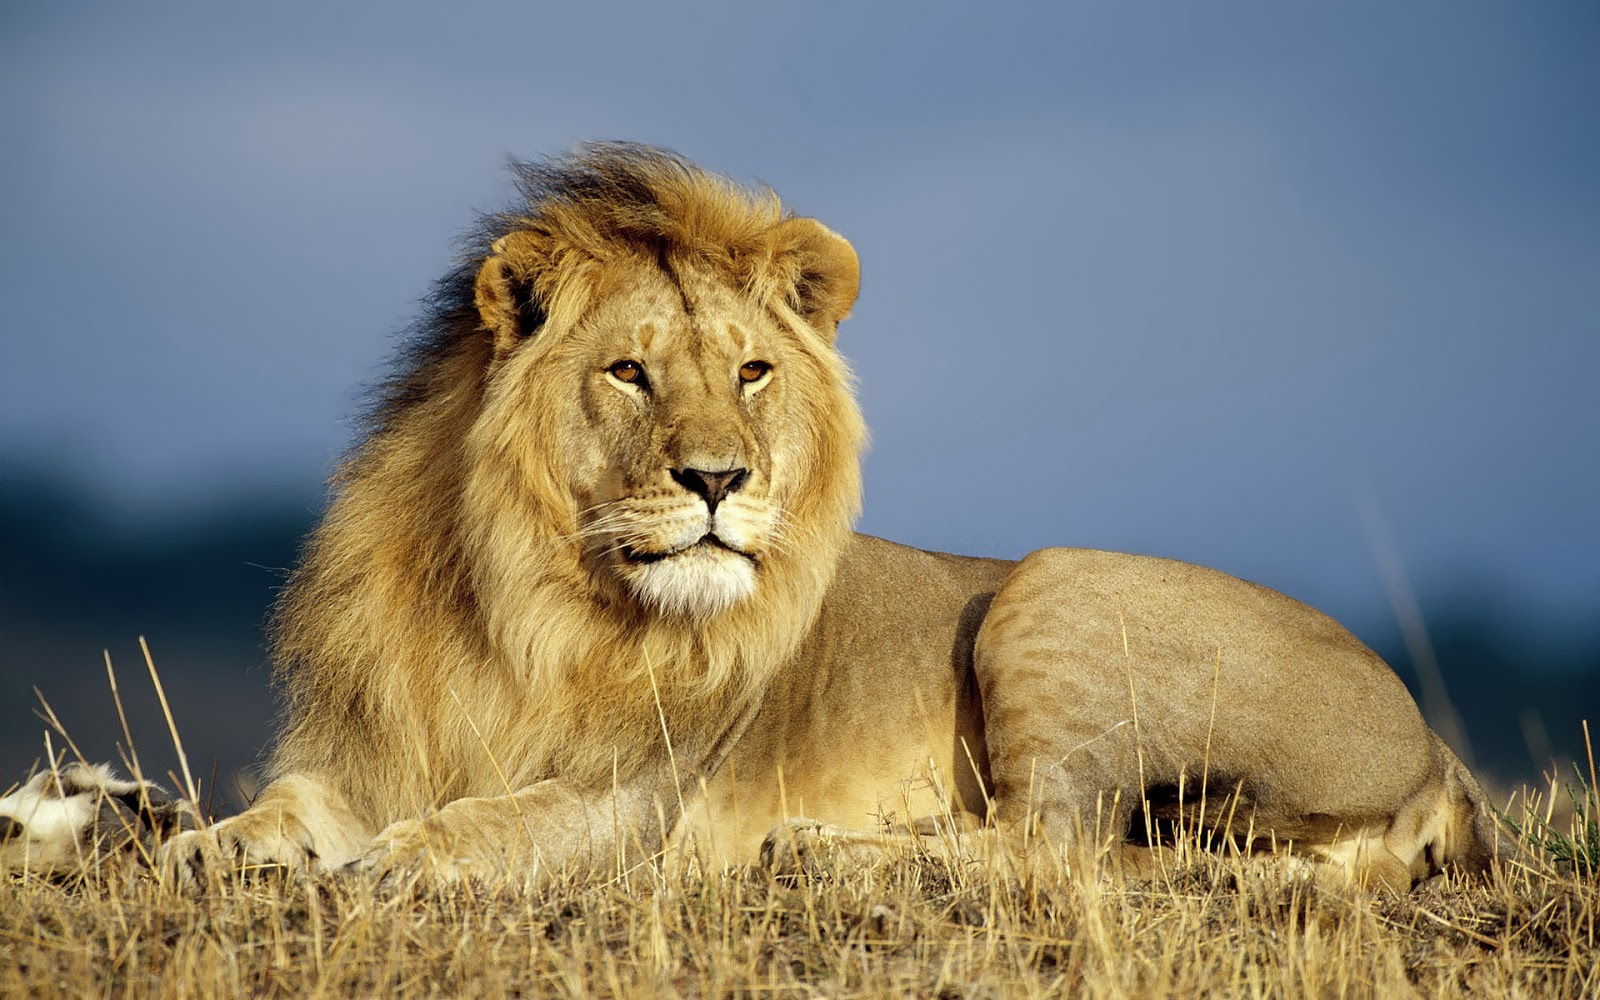 HD Lions Wallpapers and Photos HD Animals Wallpapers 1600x1000